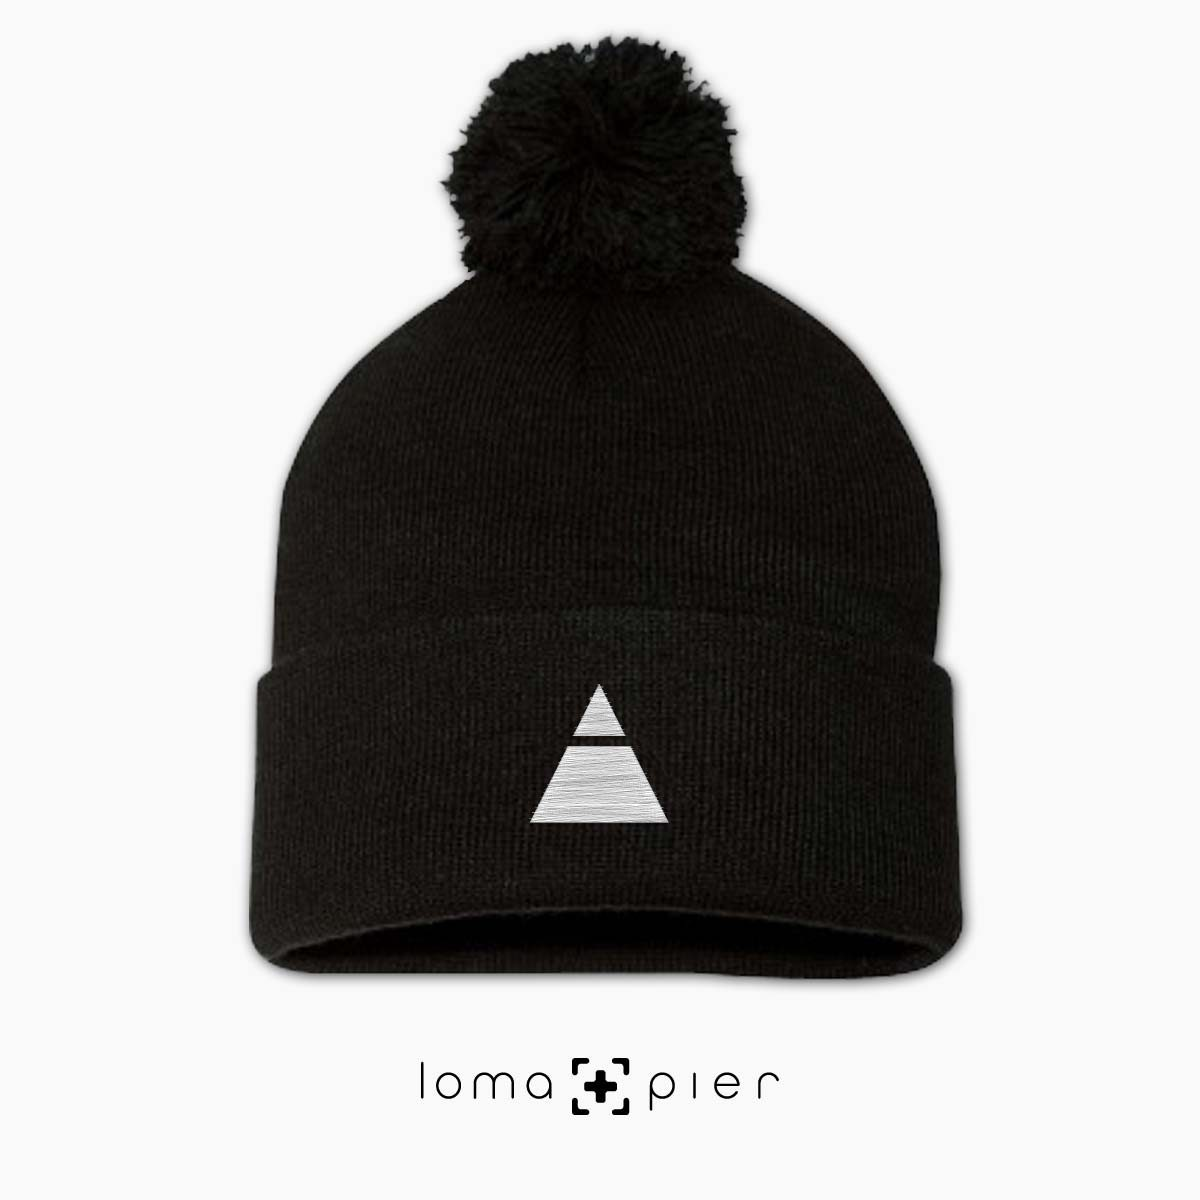 TRYANGLE icon embroidered on a black pom pom beanie with white thread by loma+pier hat store